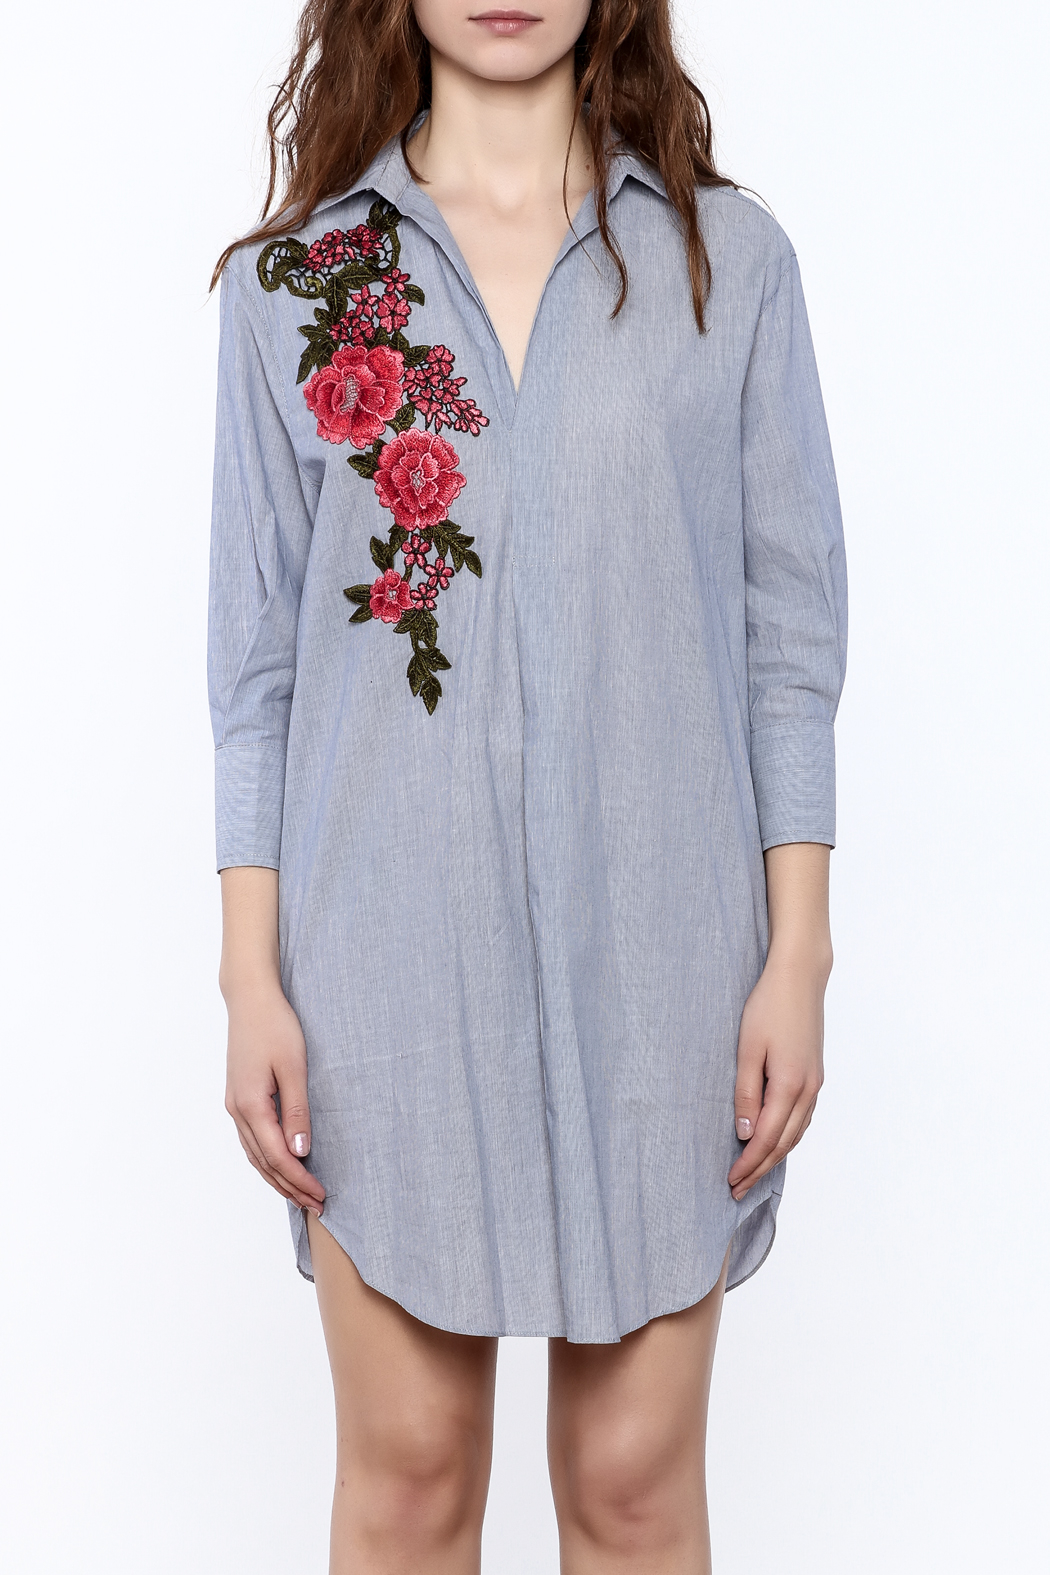 BEULAH STYLE Floral Applique Dress - Side Cropped Image